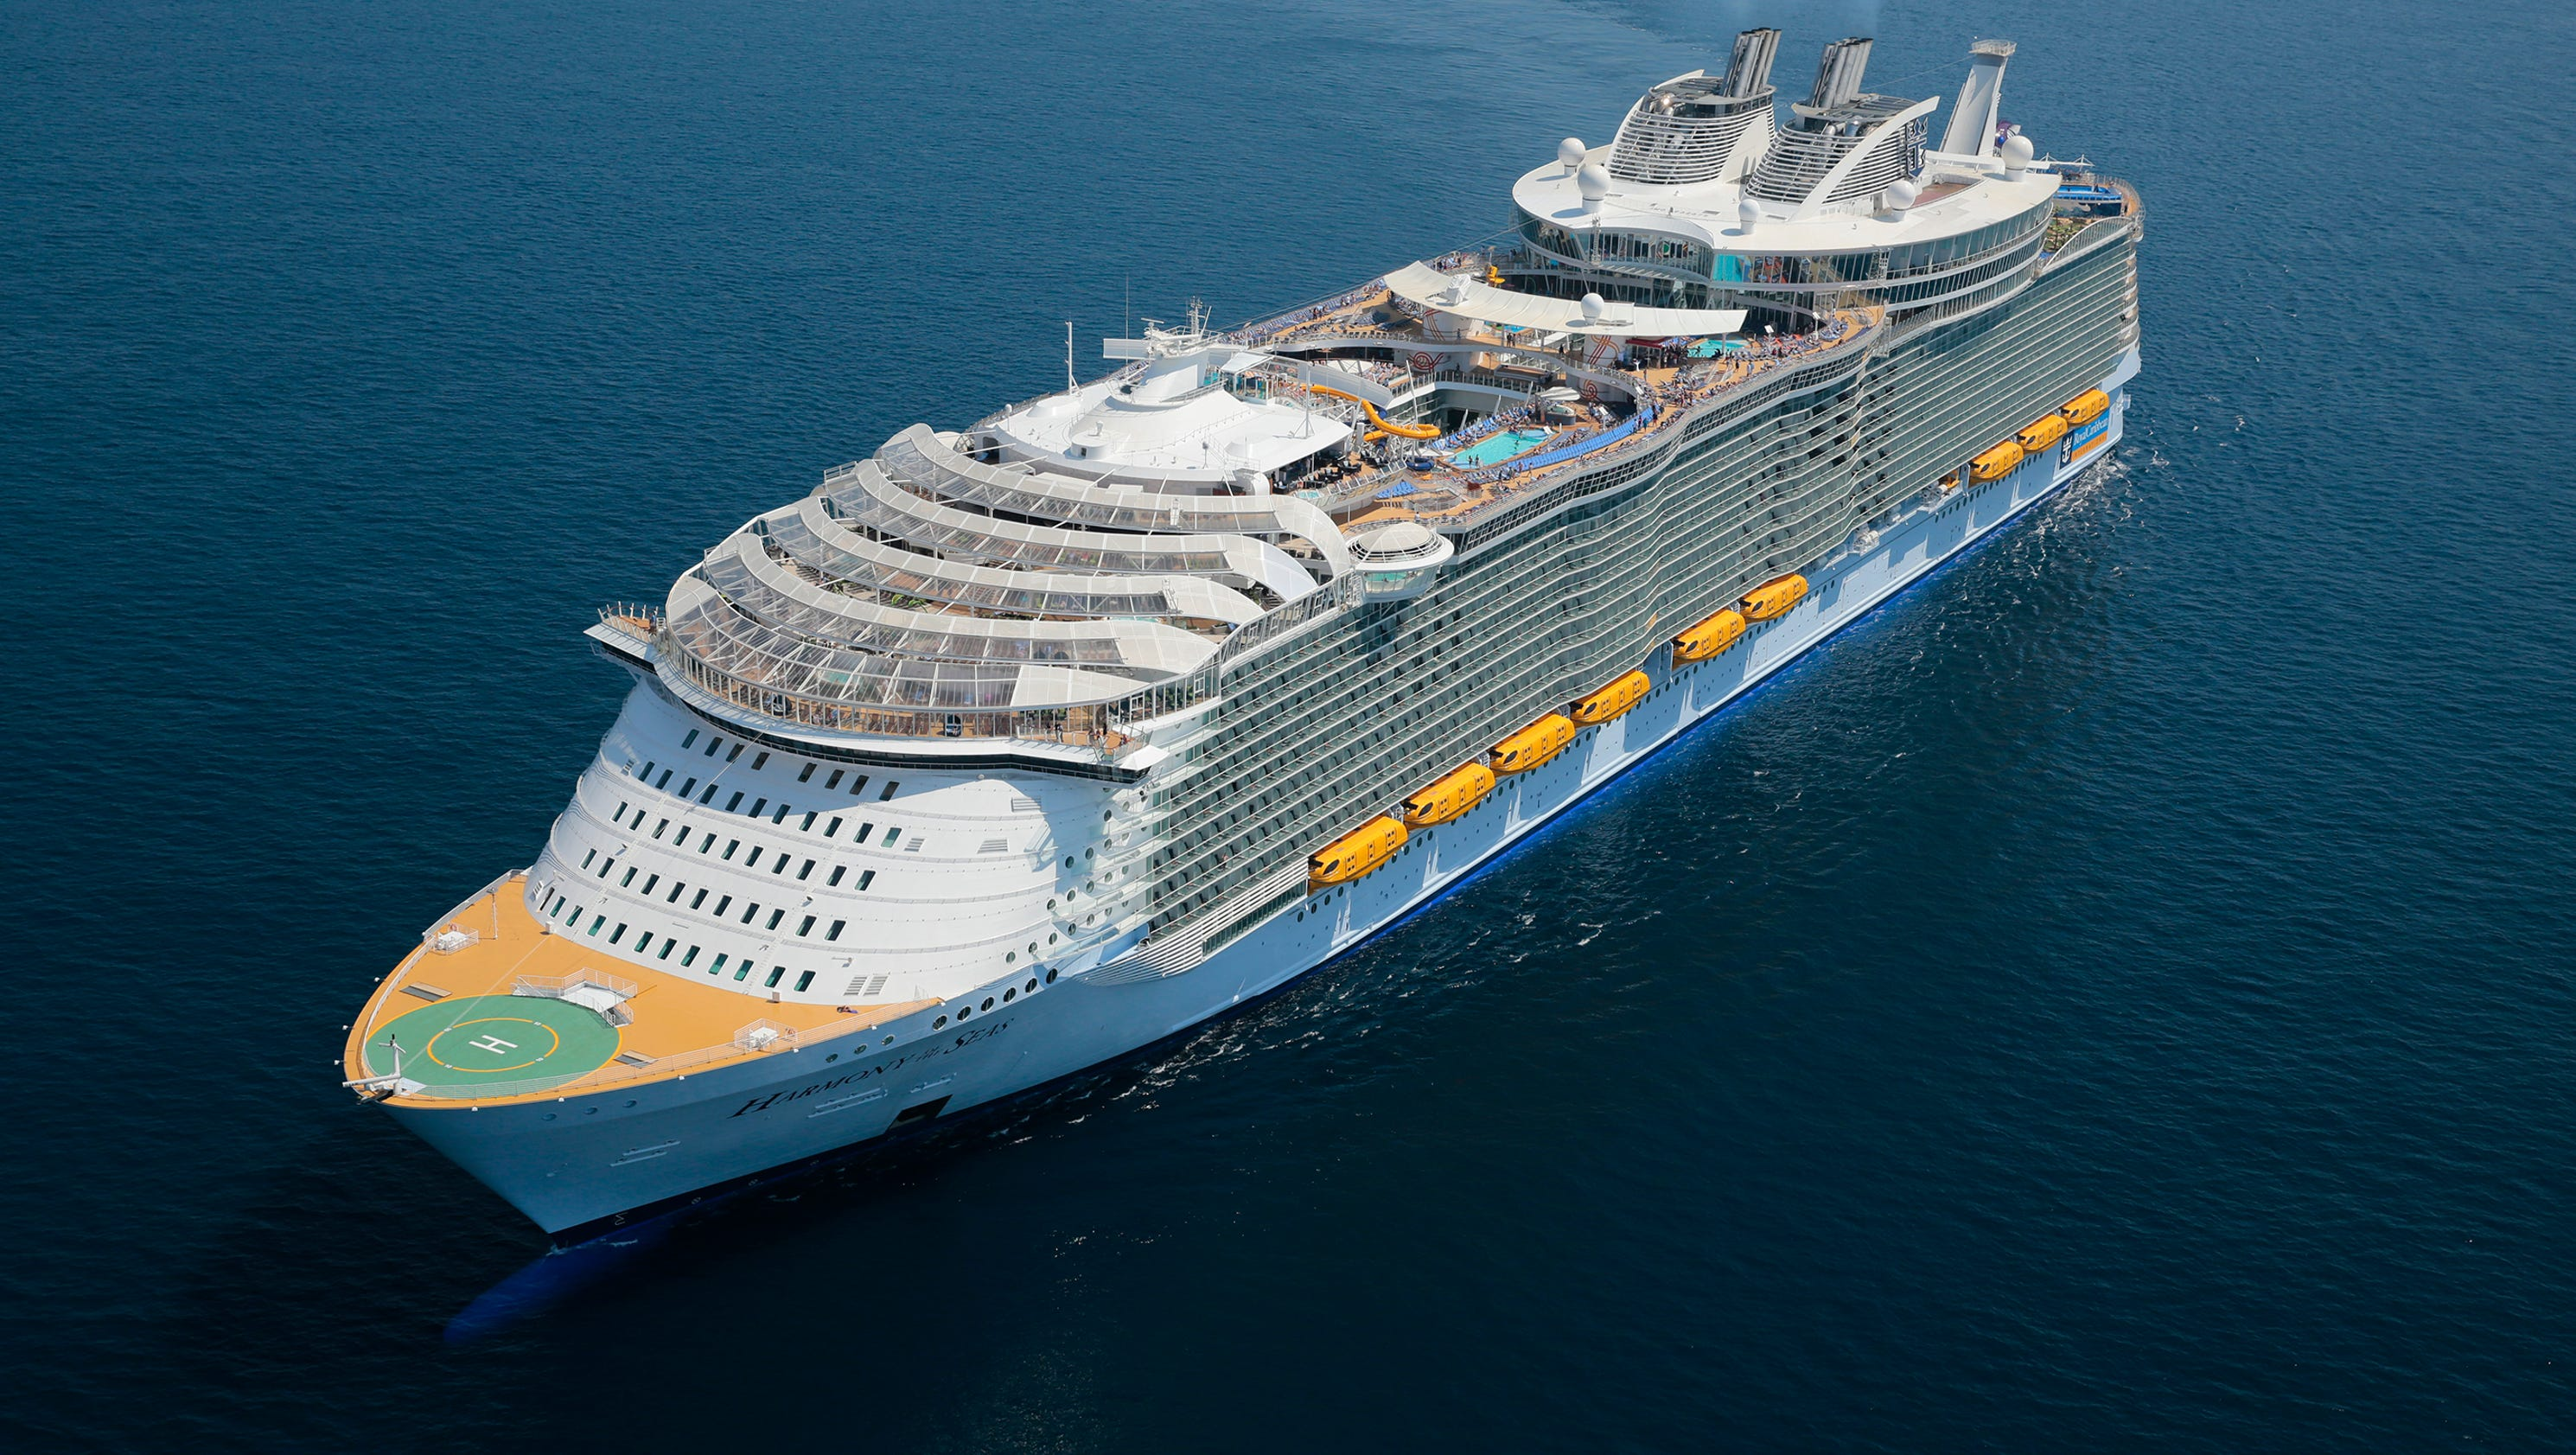 Preview The Hottest New Cruise Ships Of - How many knots does a cruise ship go